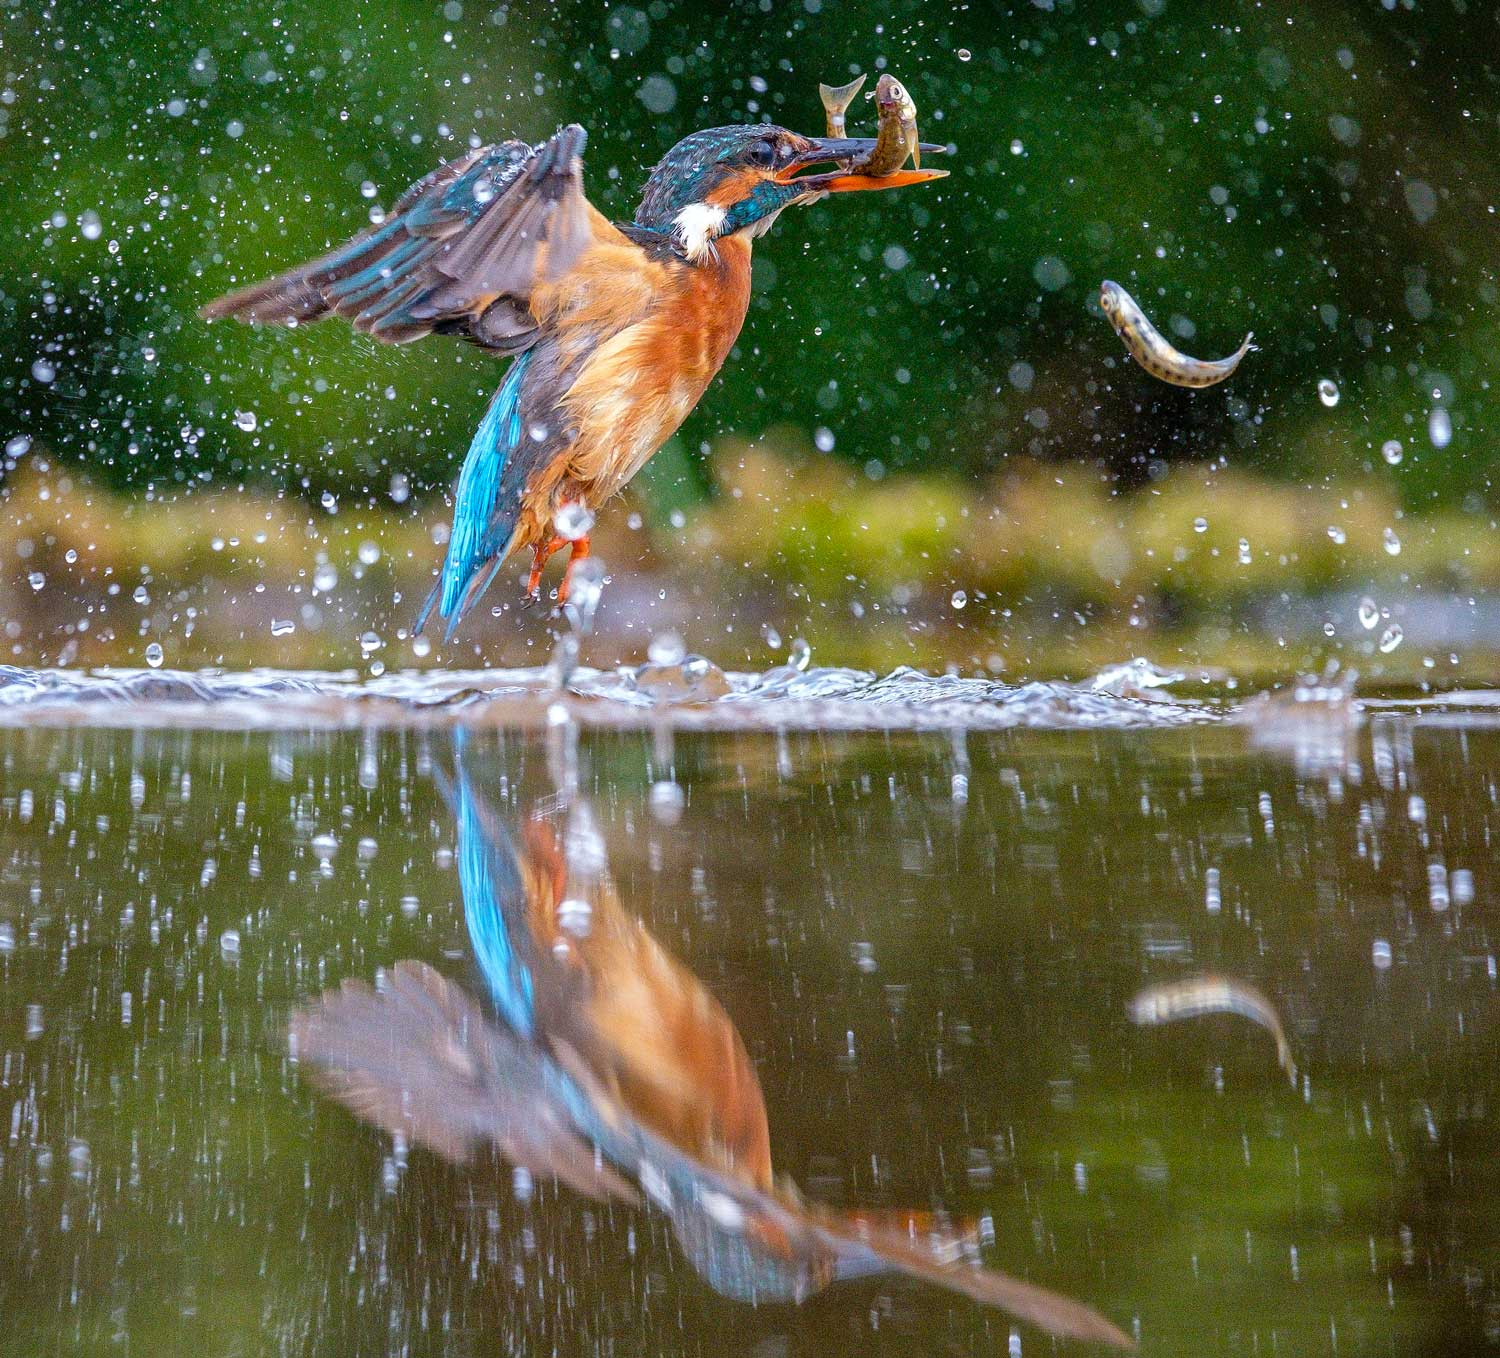 Diving Kingfisher, River Tarff, Dumfries and Galloway, Scotland - Bob Hamilton